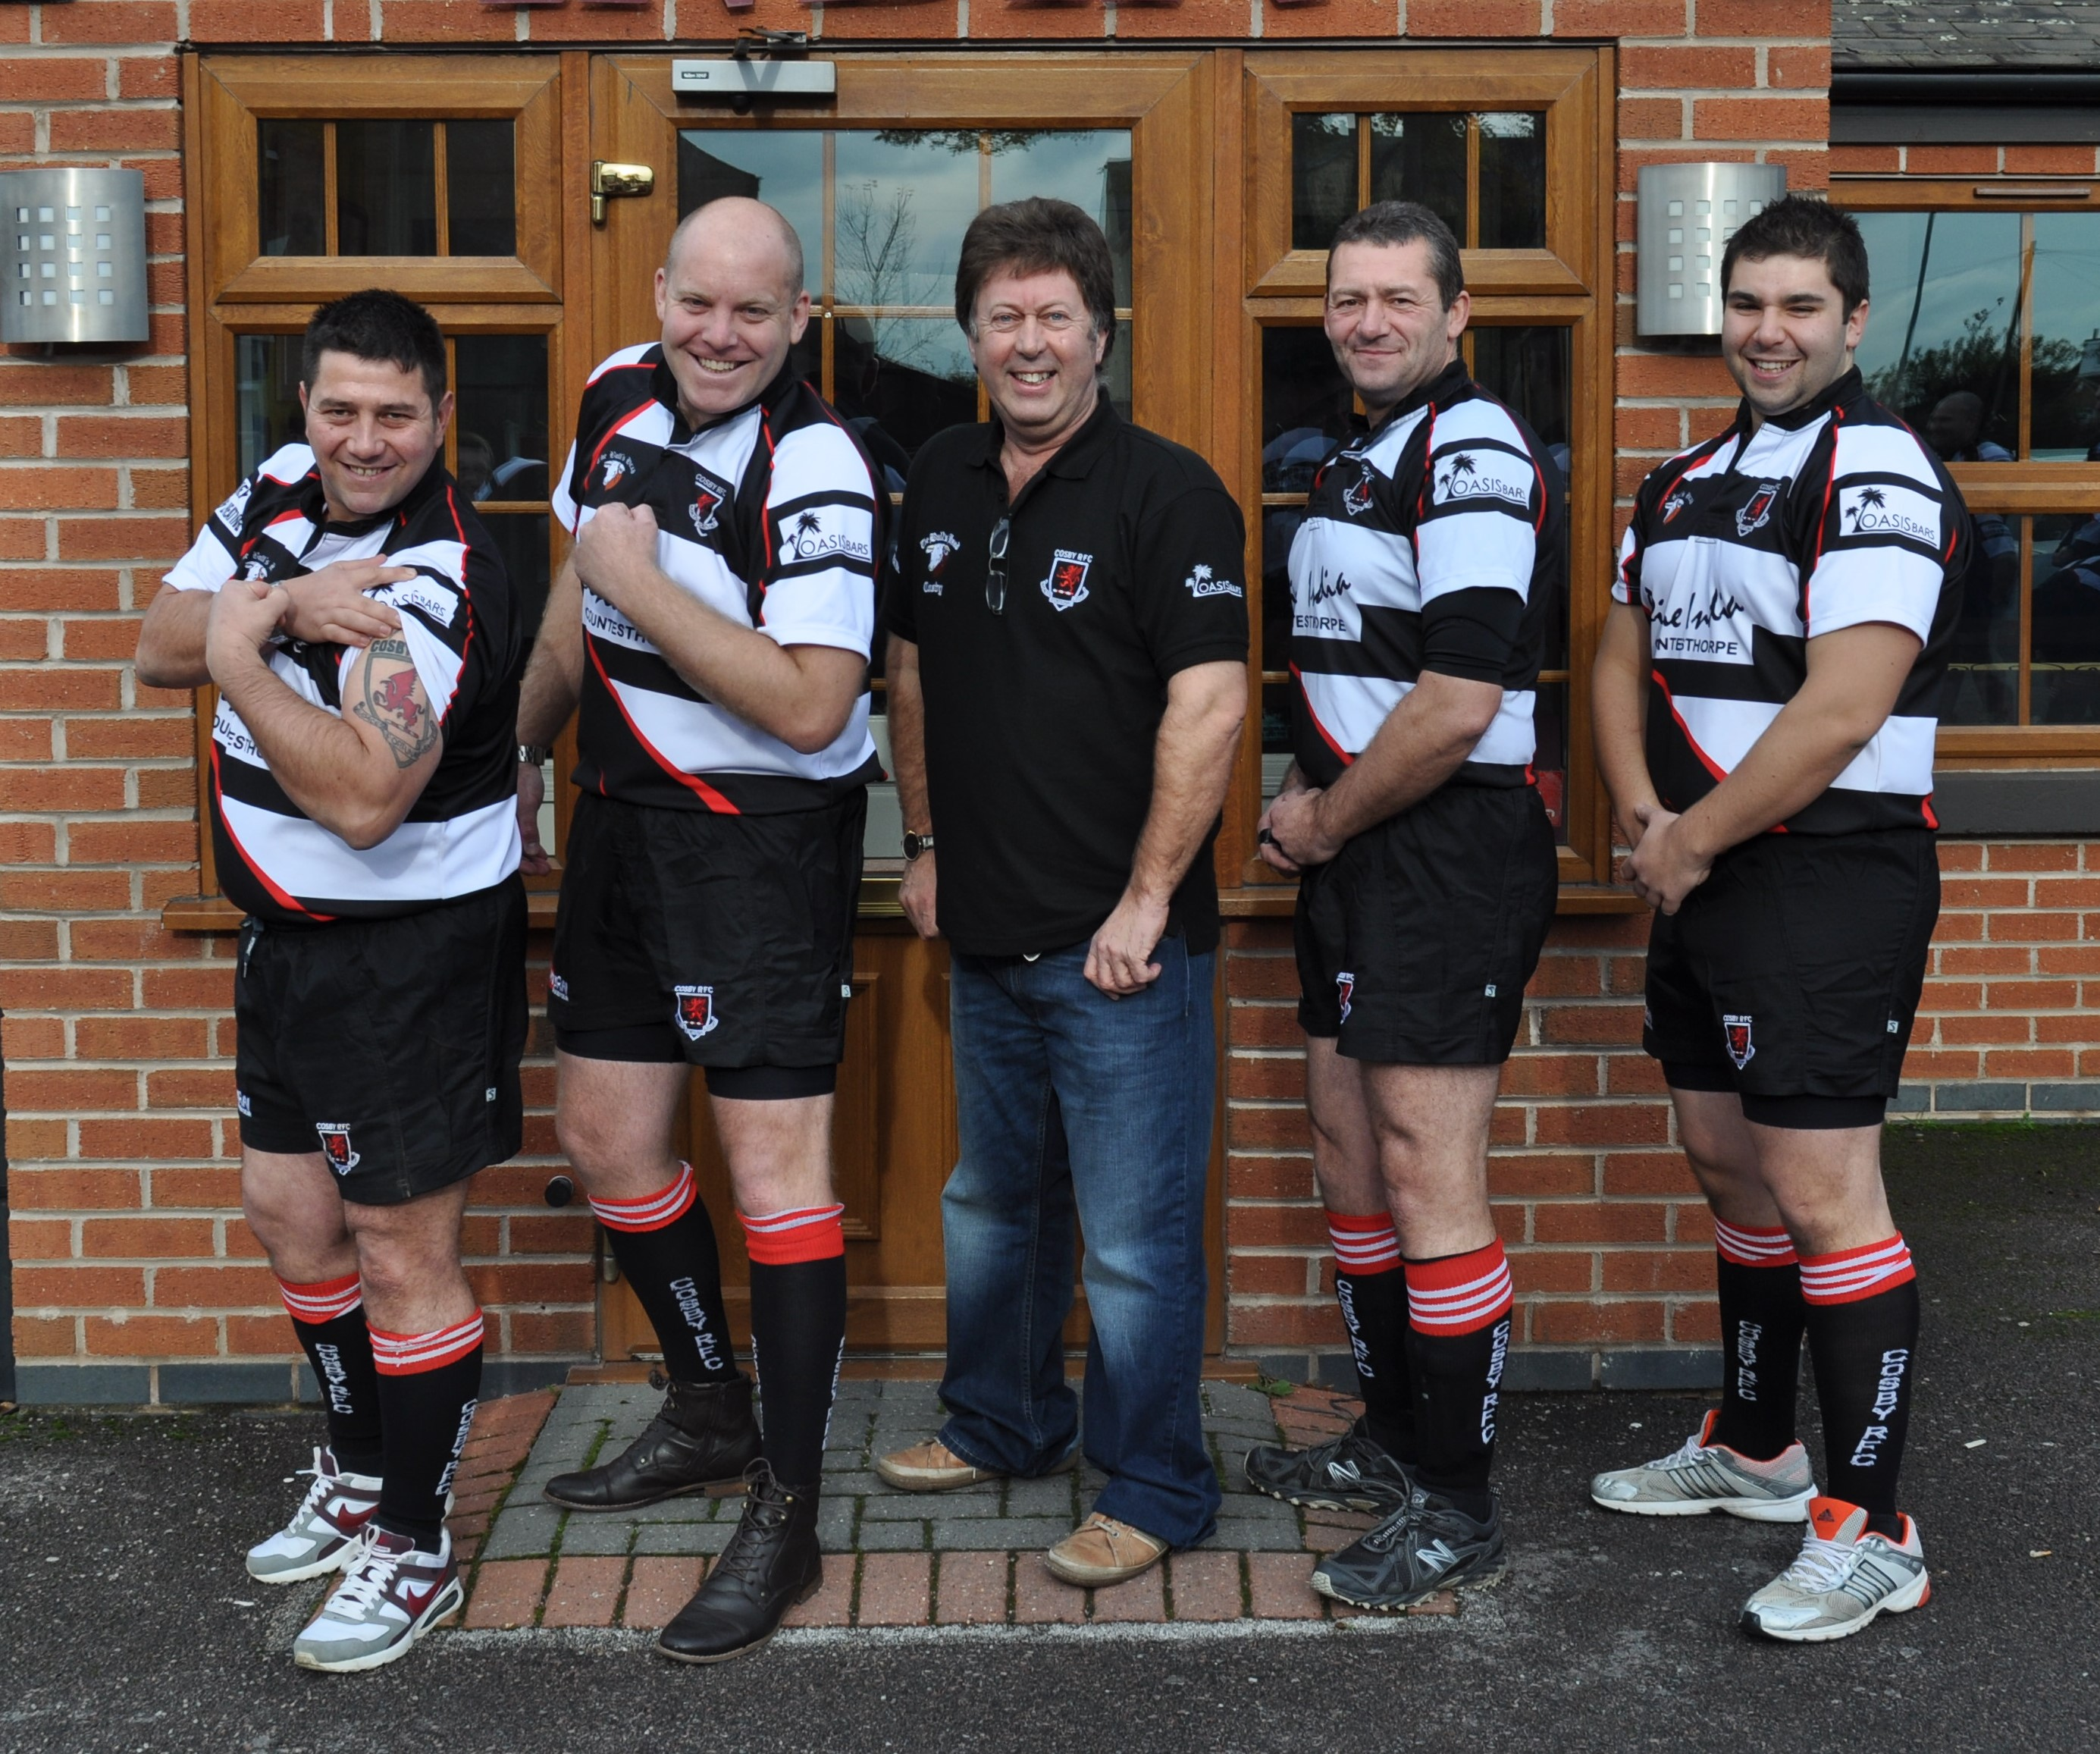 Mobile Bar company sponsors rugby - Oasis Mobile Bars